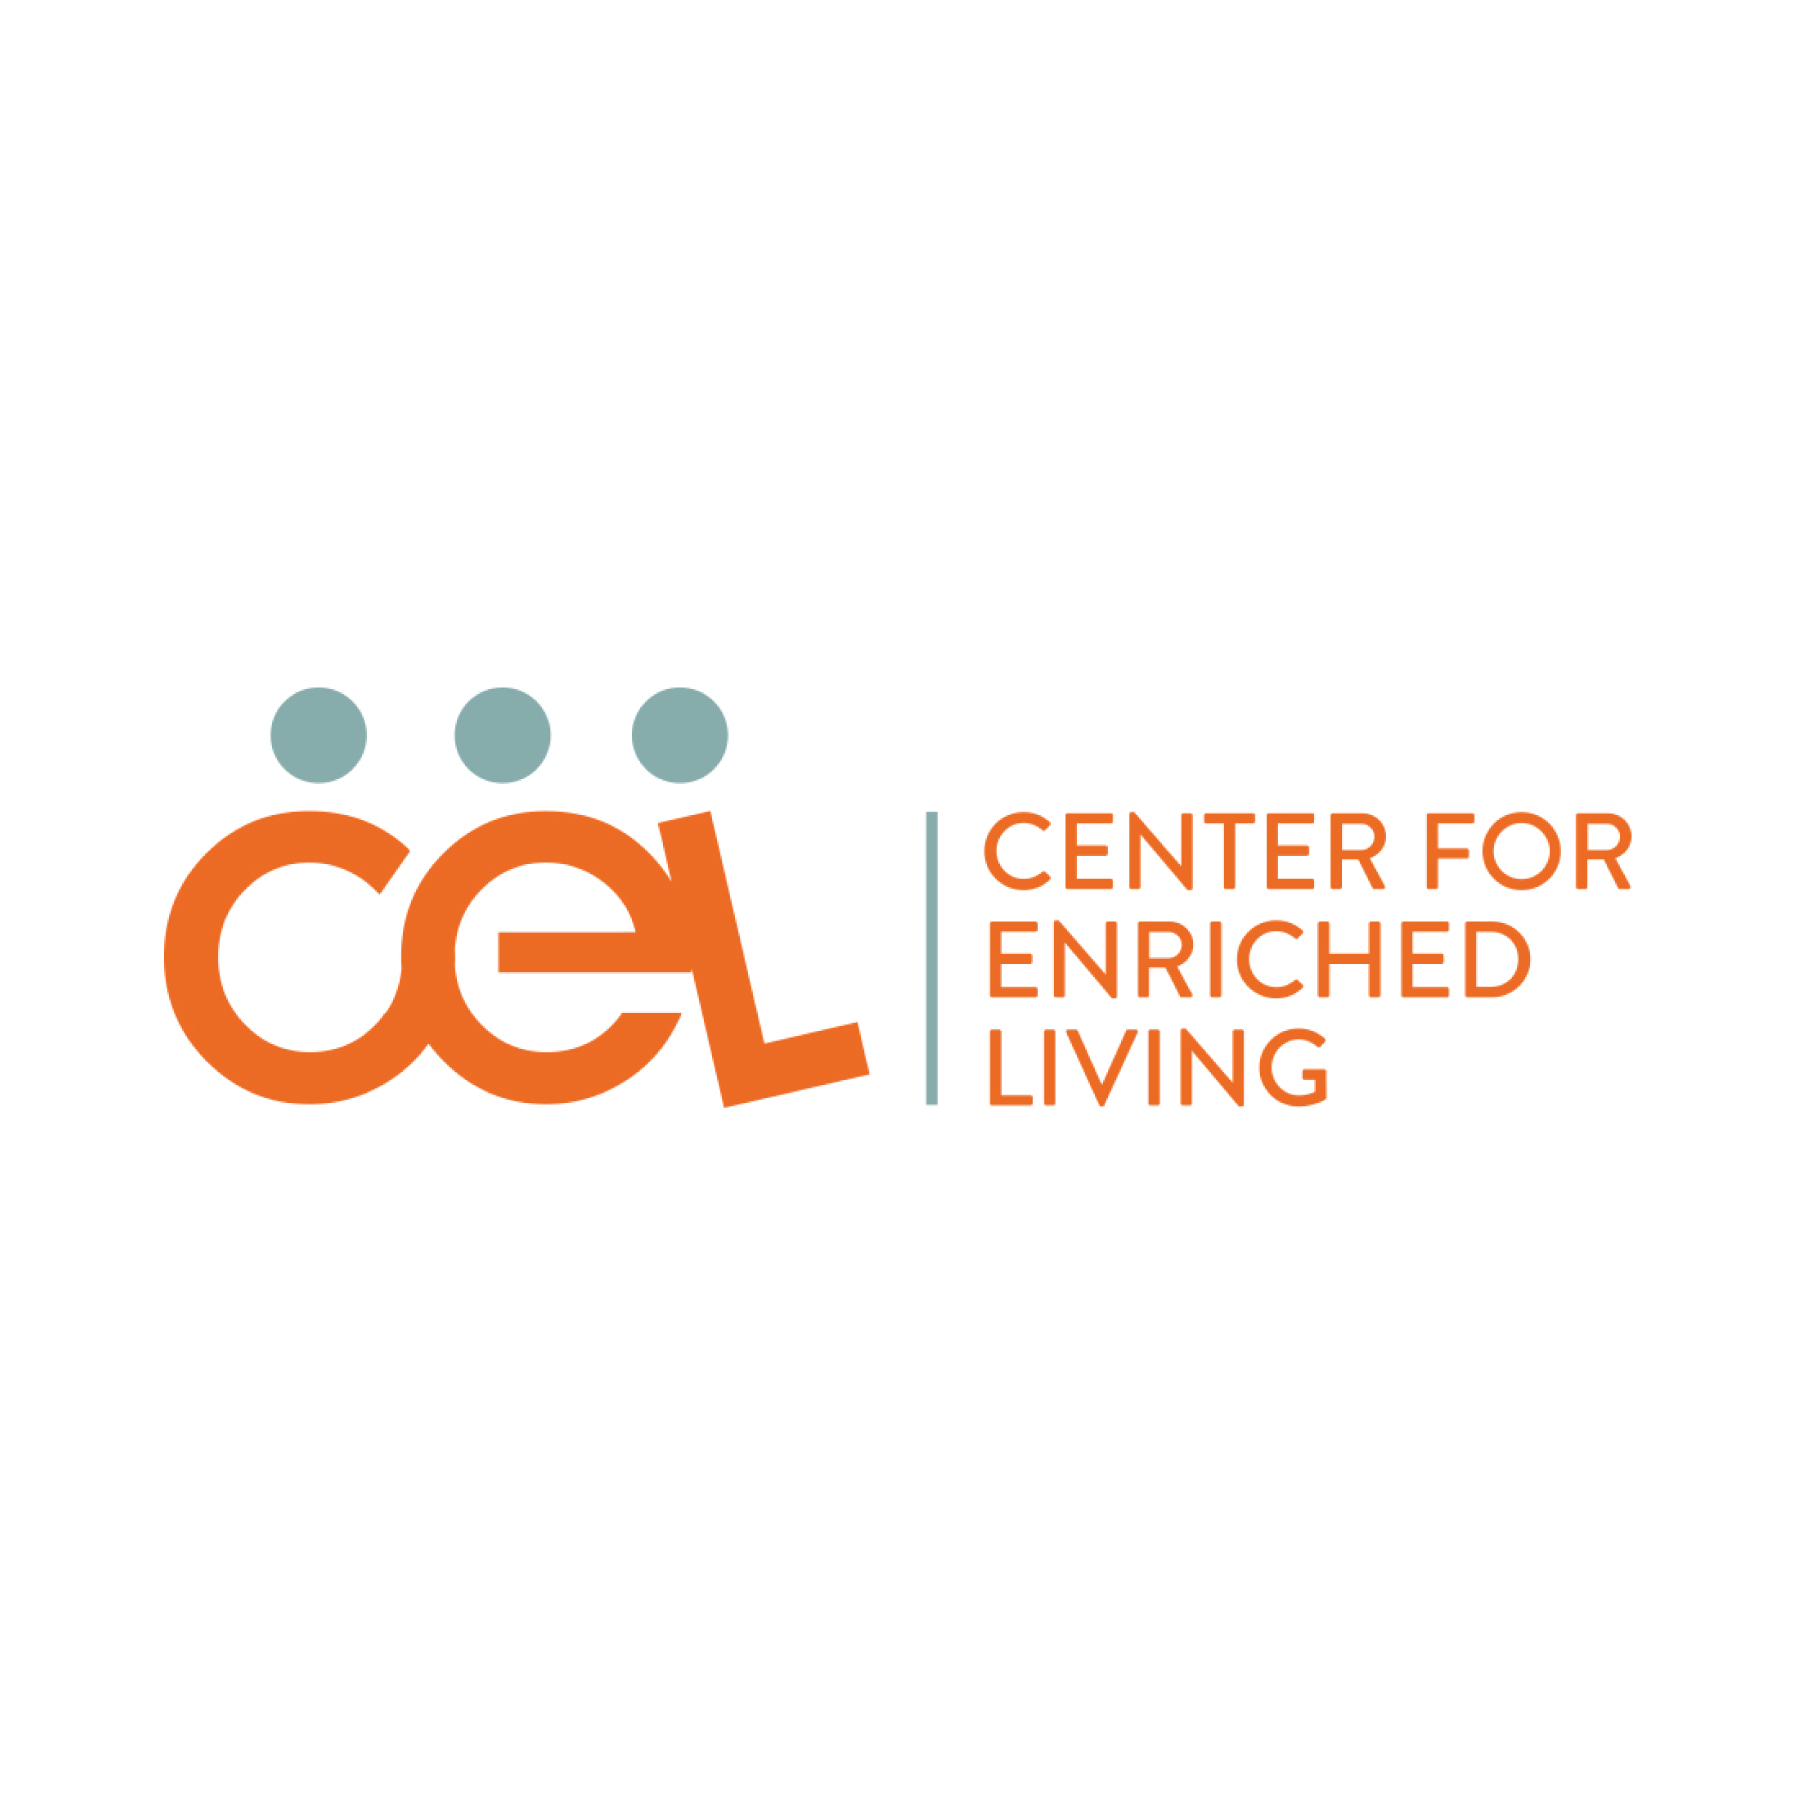 Center-For-Enriched-Living